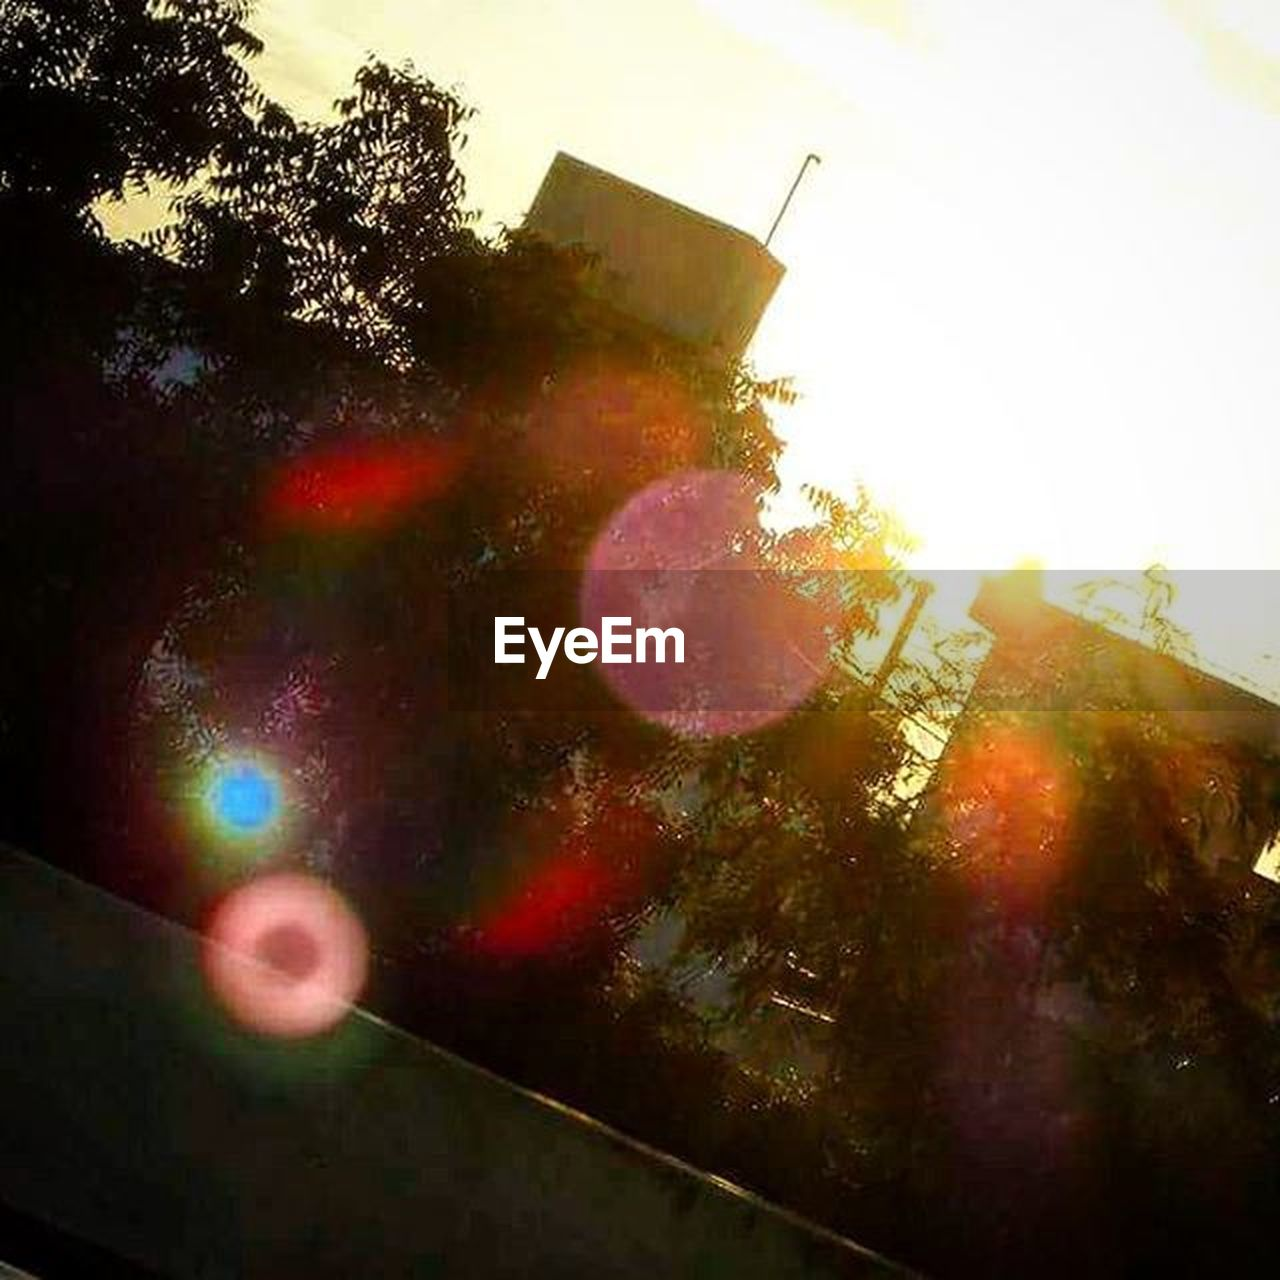 lens flare, sun, outdoors, no people, sunlight, tree, sky, multi colored, day, nature, close-up